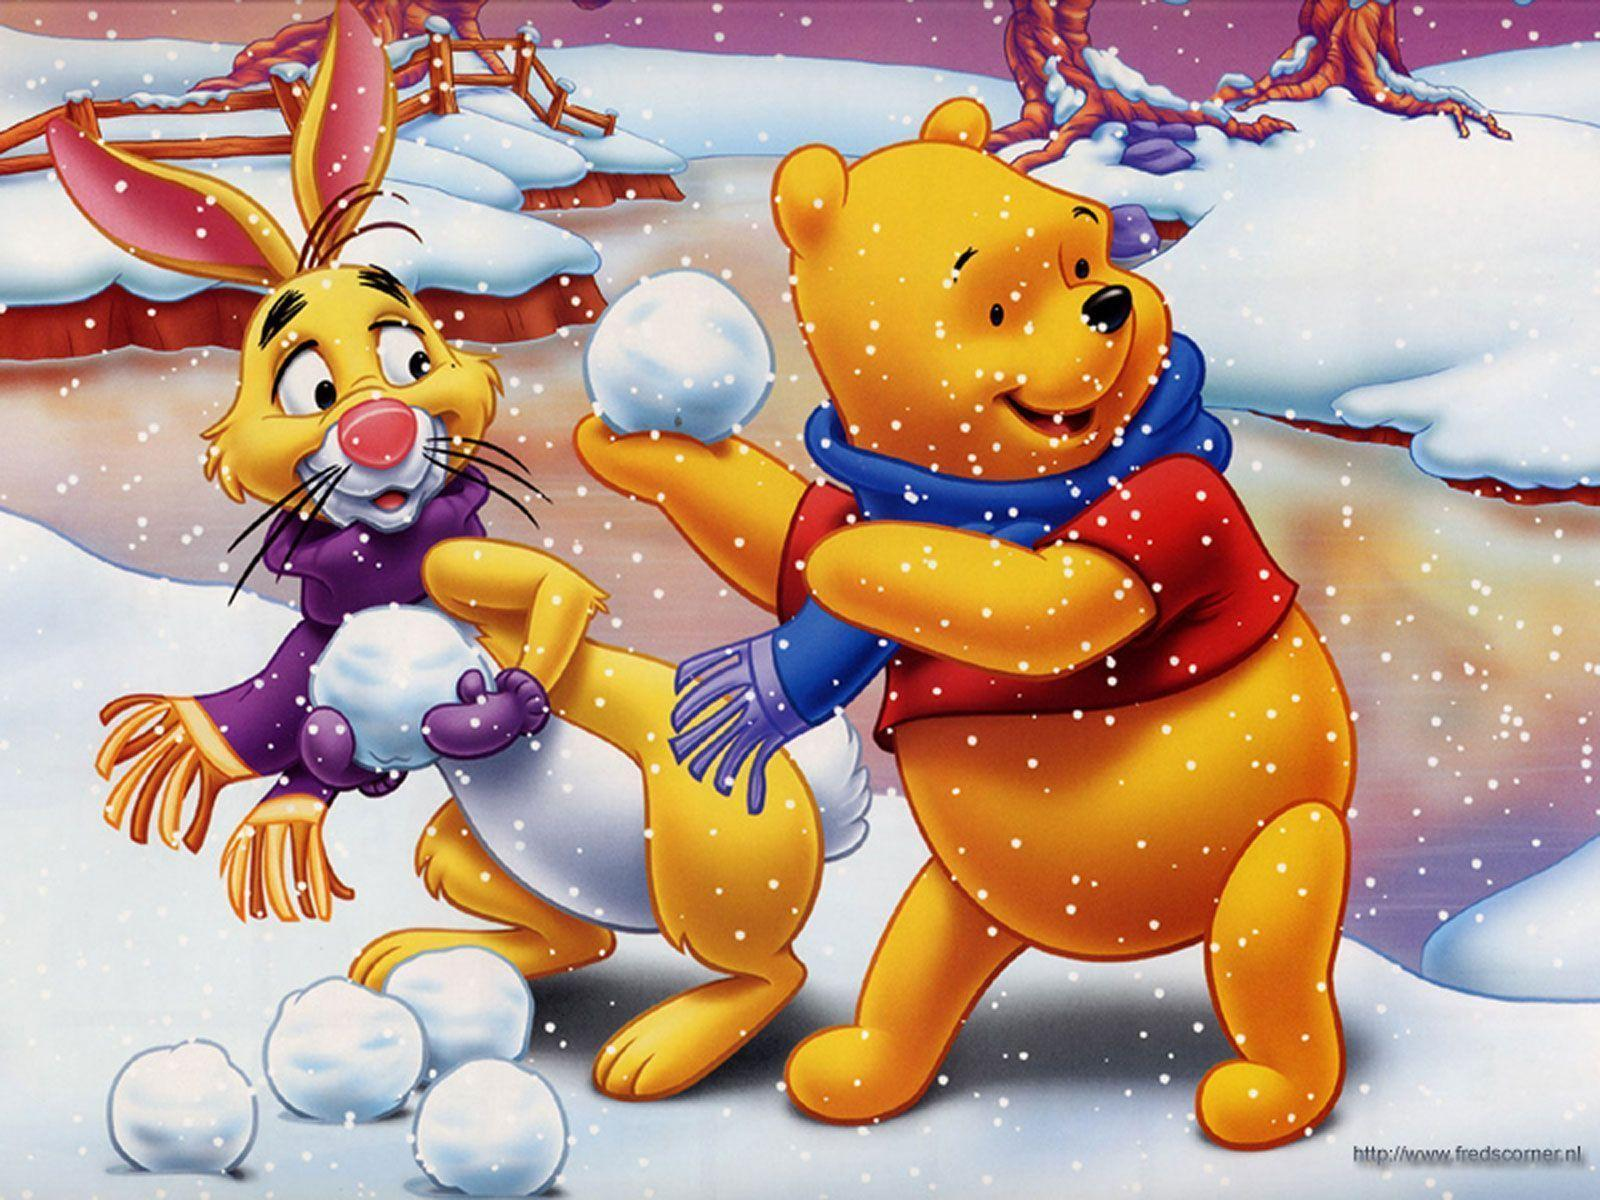 Winnie The Pooh Christmas Wallpaper Backgrounds